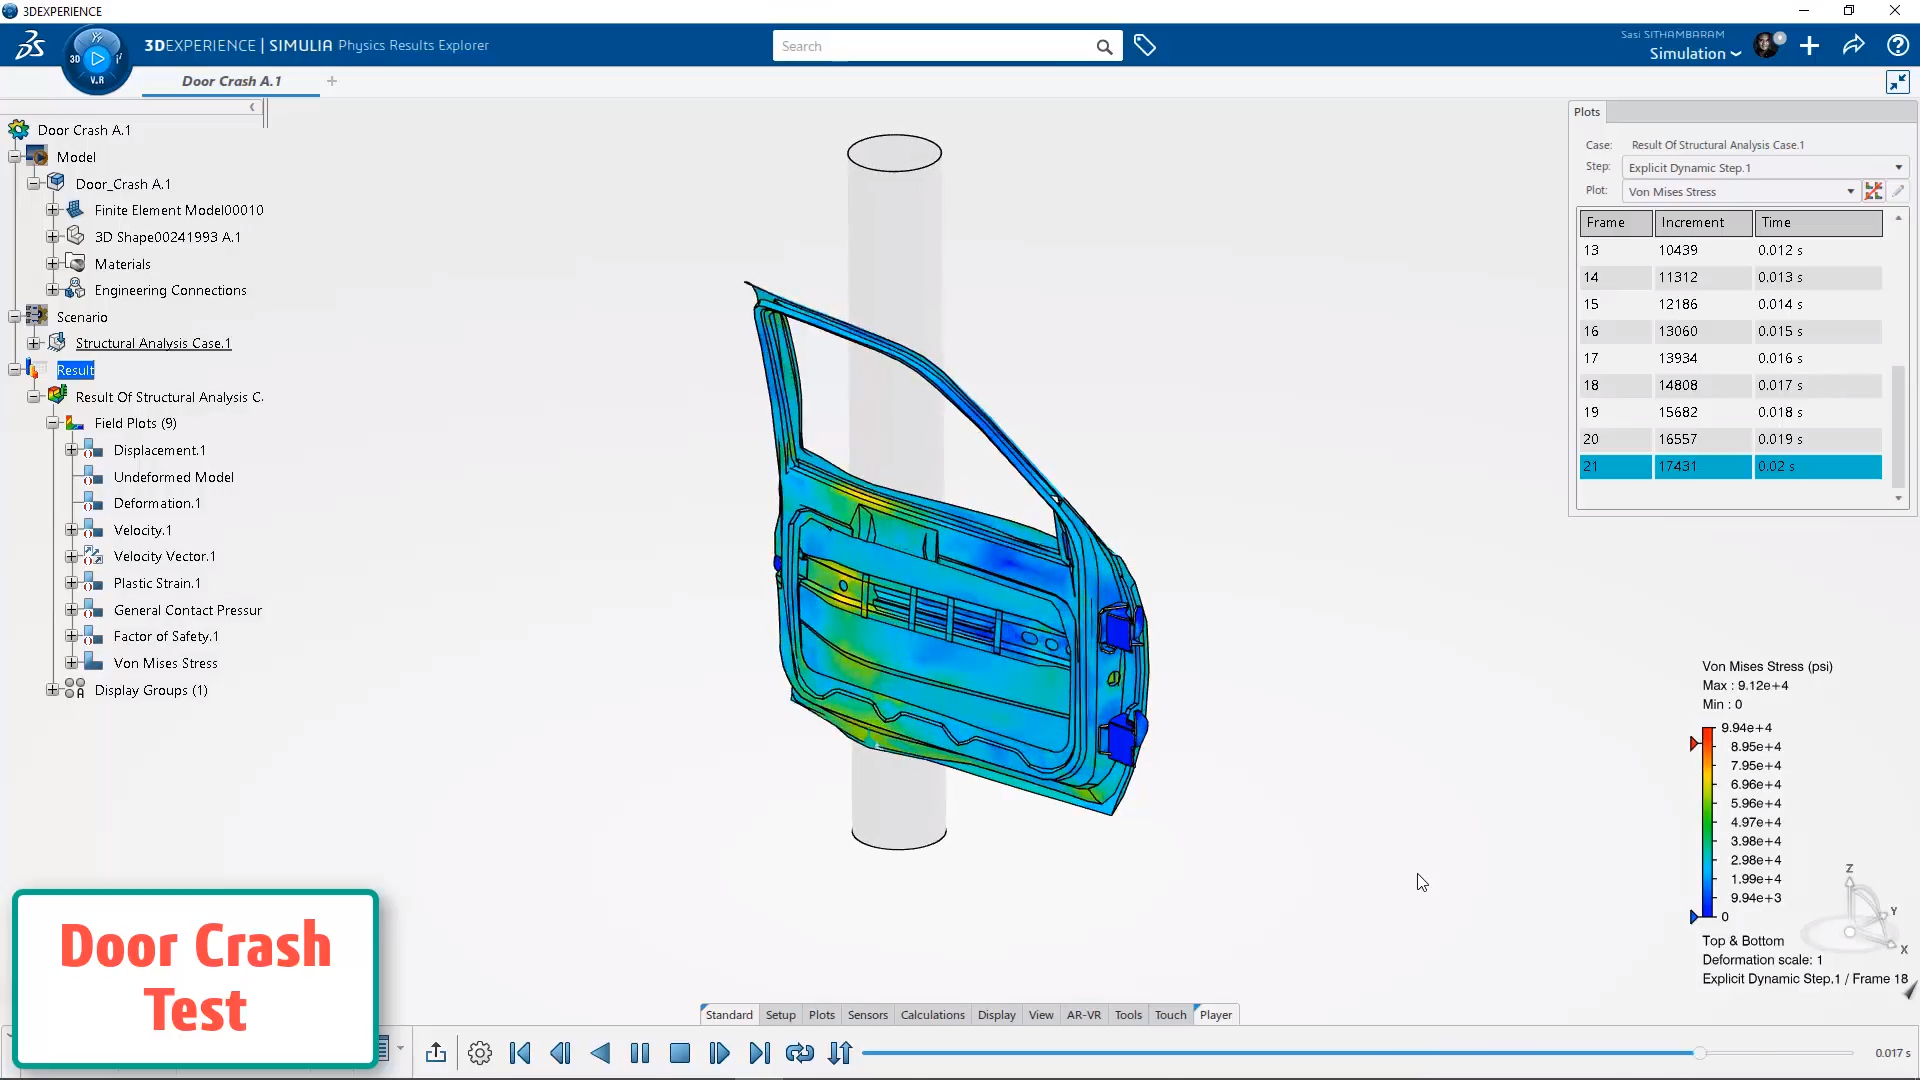 Extend Your Simulation Capabilities with SIMULIAworks